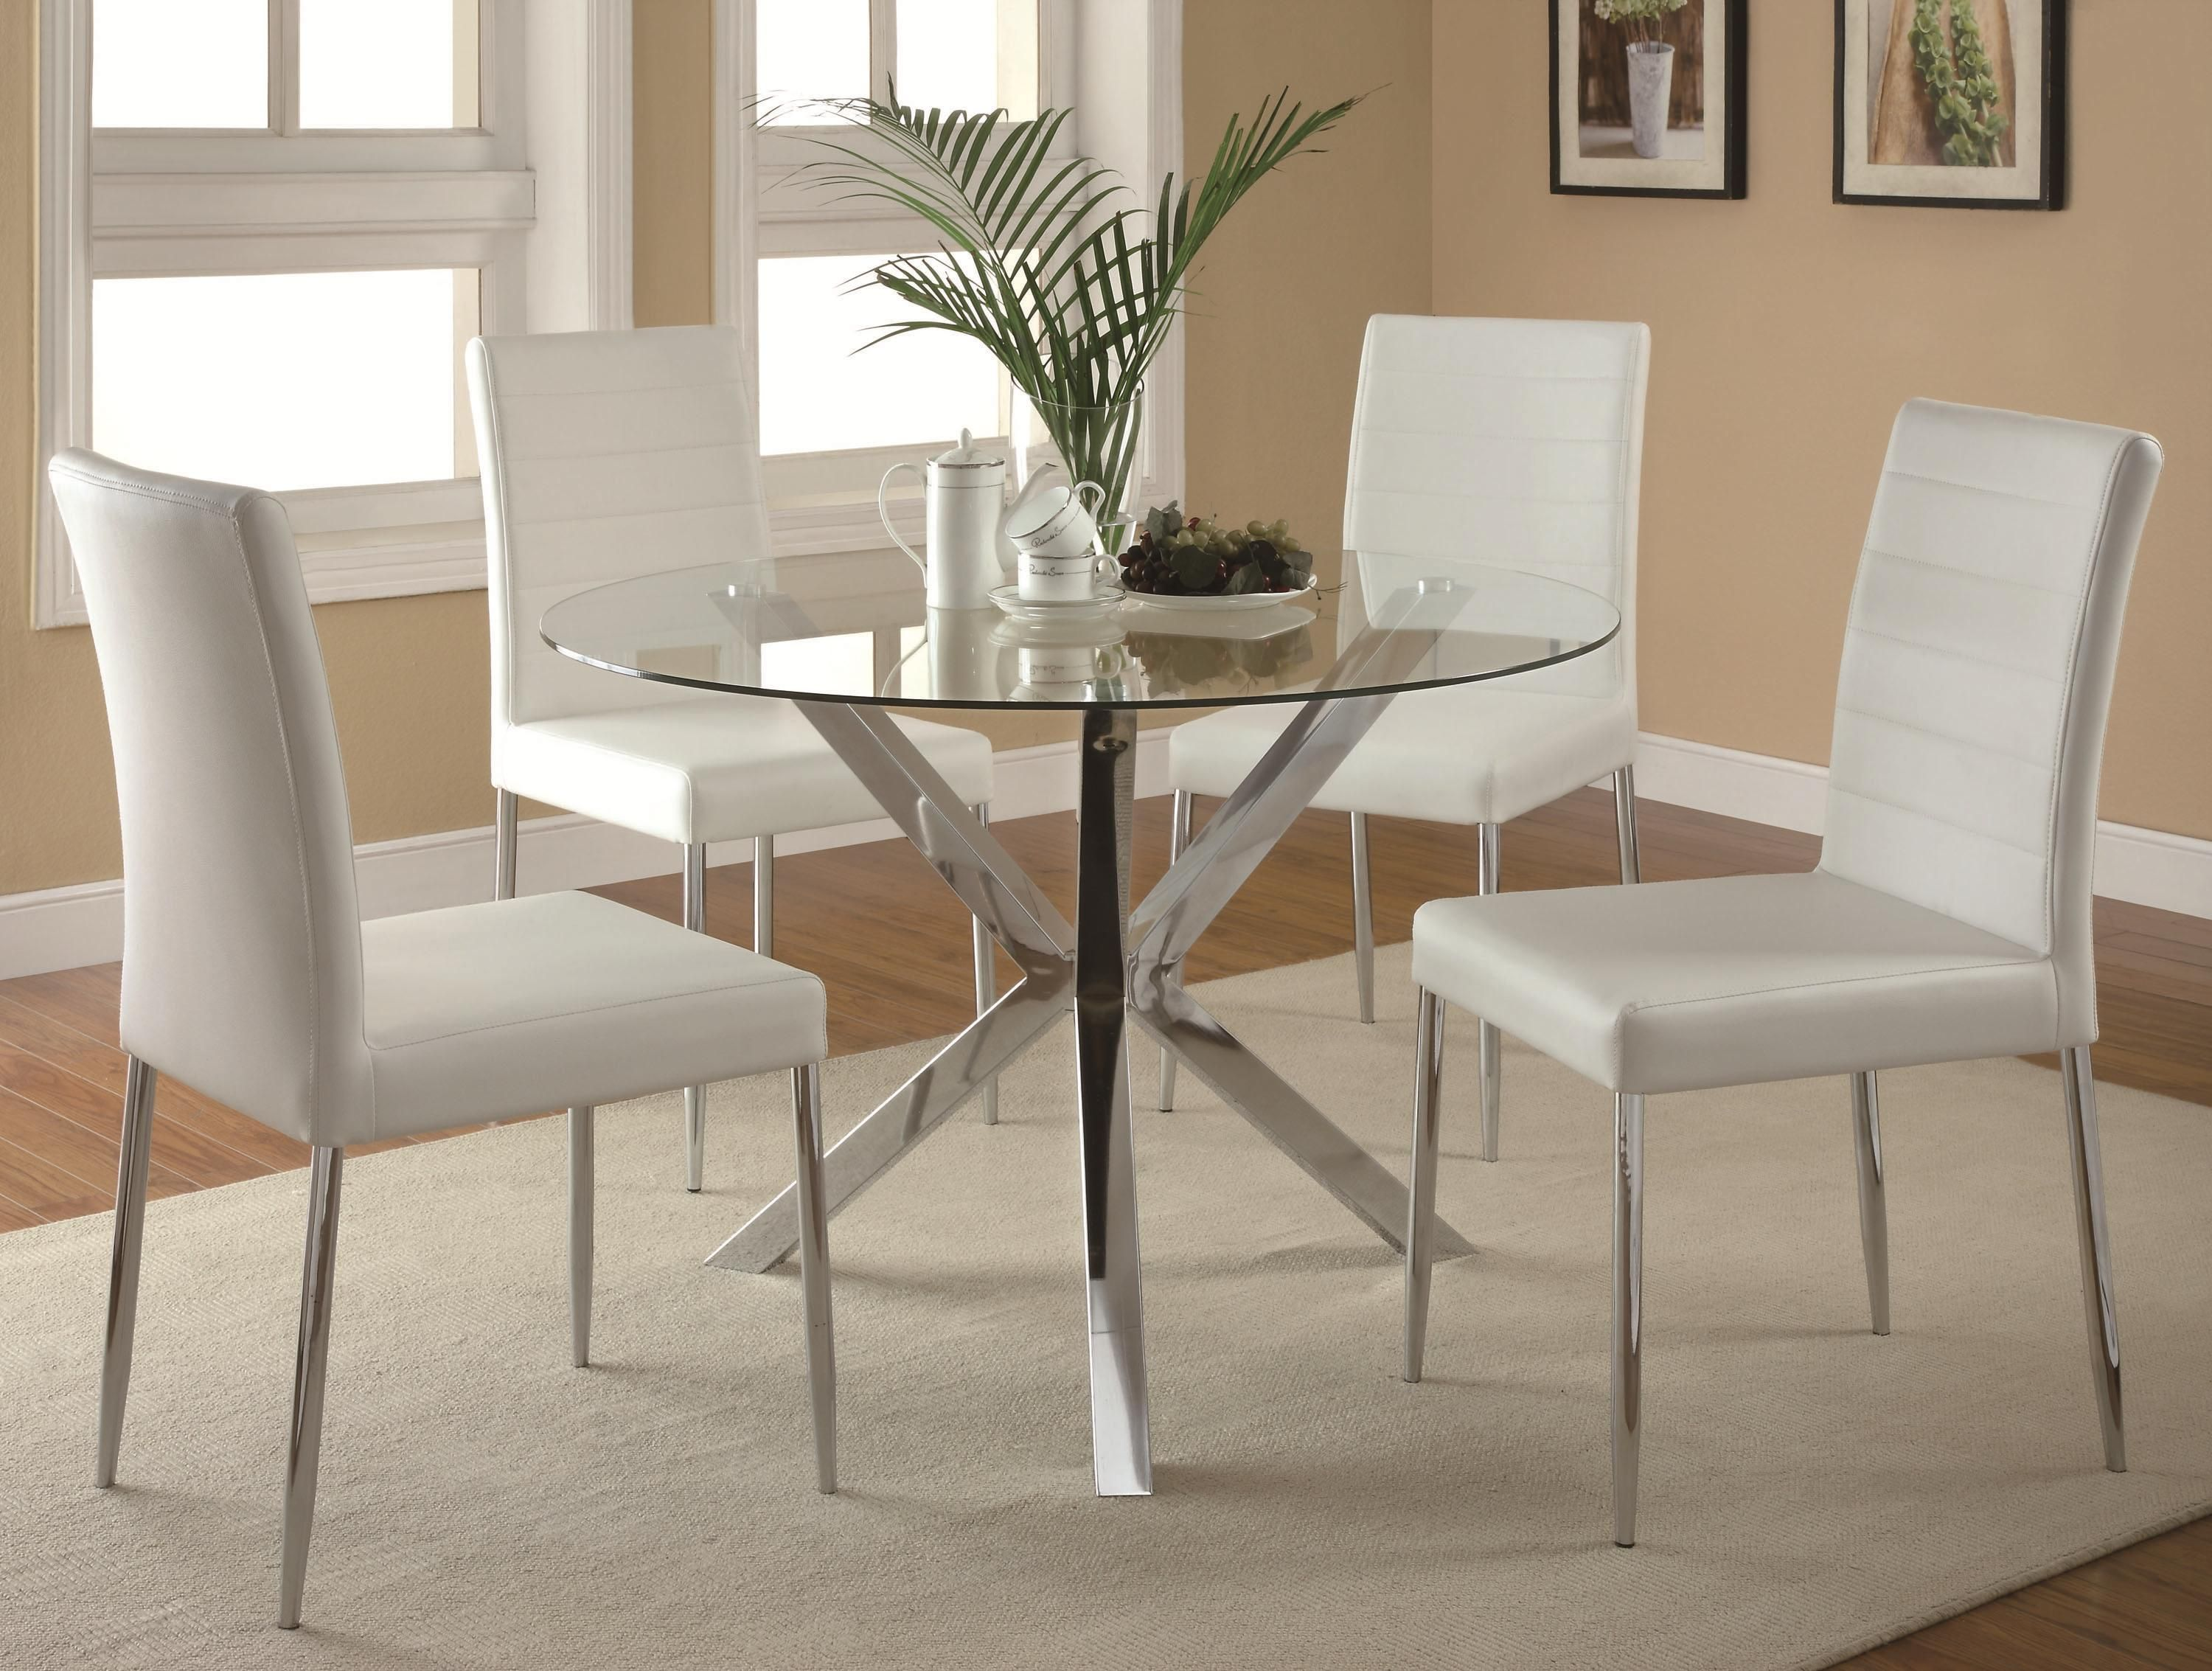 Vance Contemporary 5 Piece Glass Top Table And Chair Set By